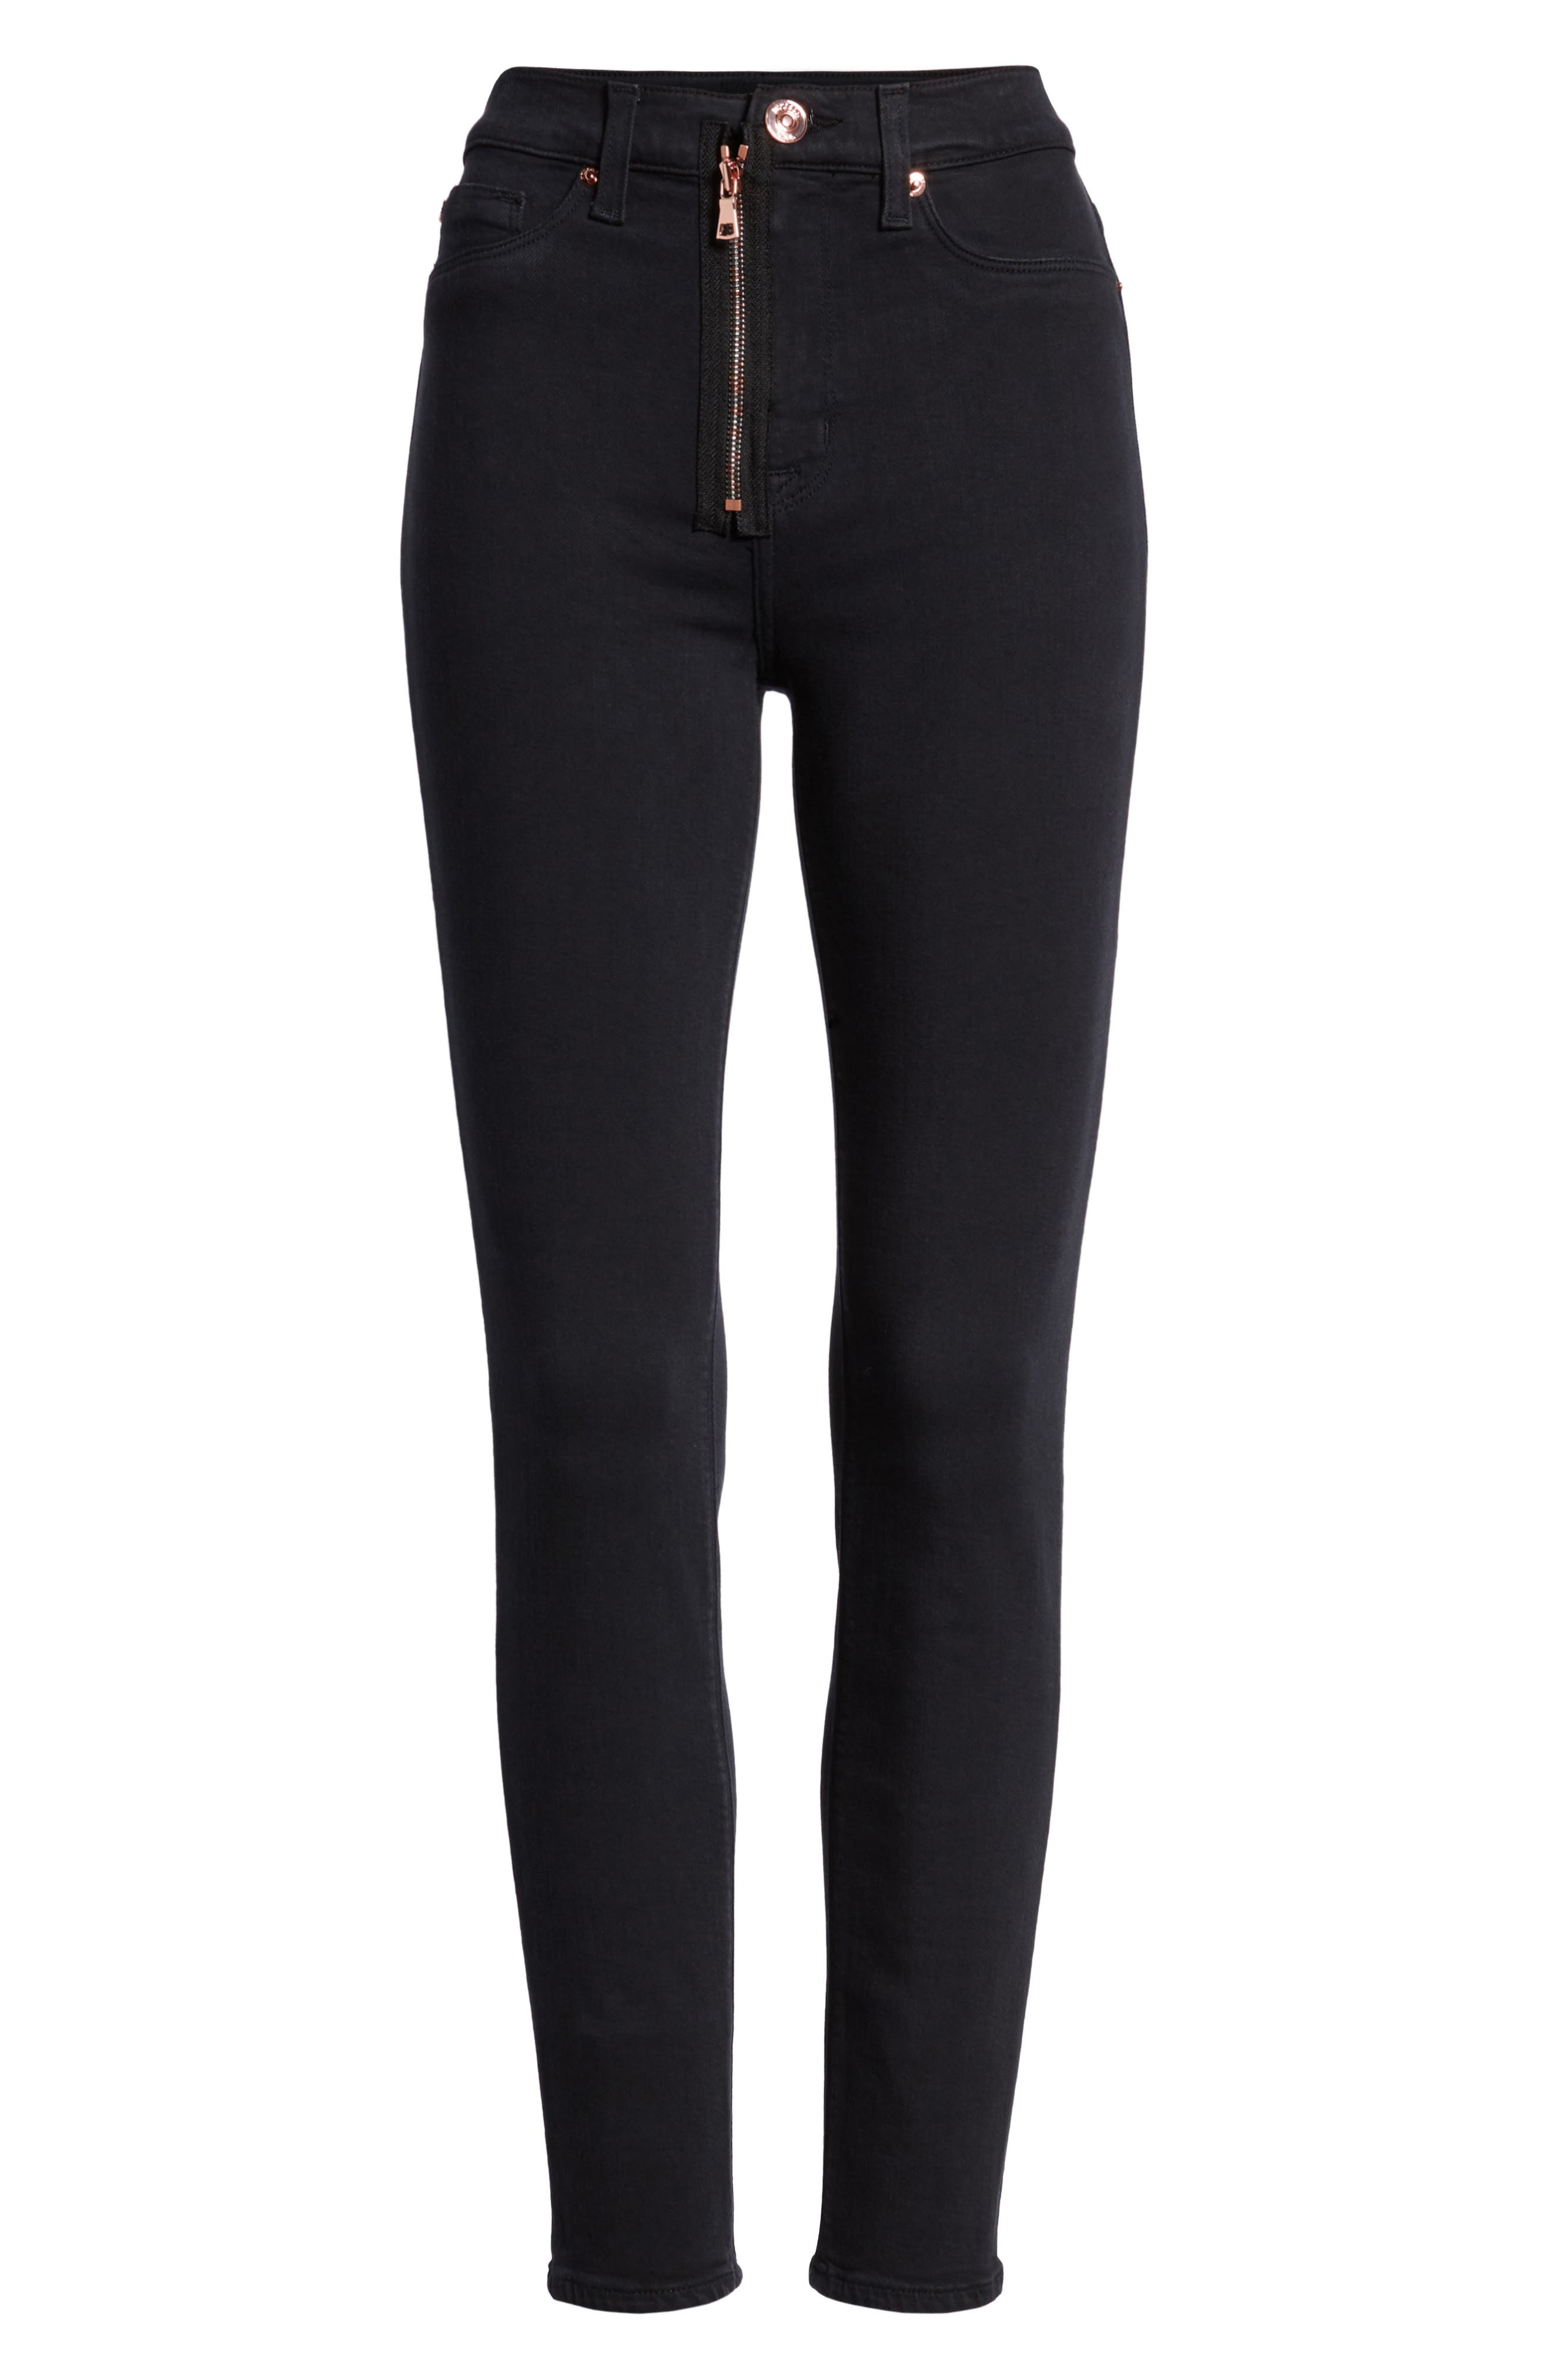 Barbara Exposed Zip High Waist Ankle Skinny Jeans,                             Alternate thumbnail 7, color,                             Maniac